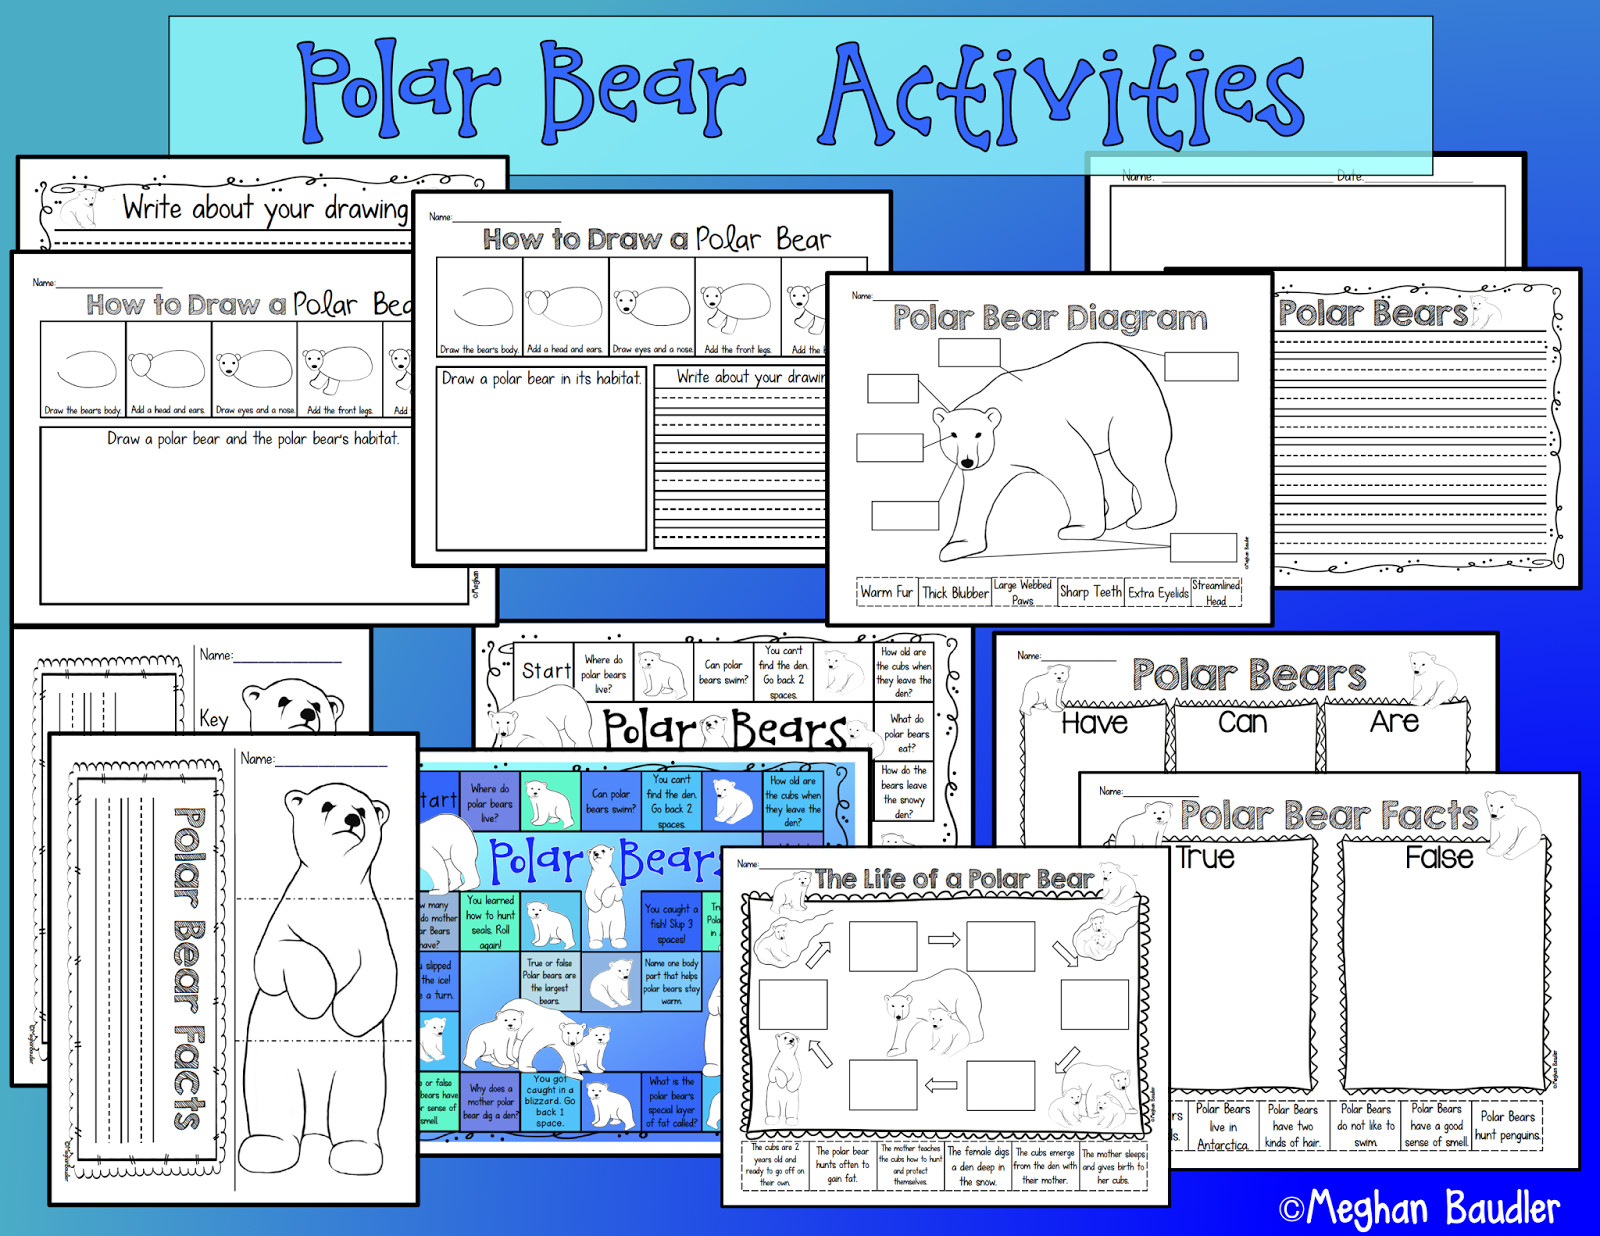 Polar Bear Diagram Typical Plant And Animal Cells The Creative Colorful Classroom January 2015